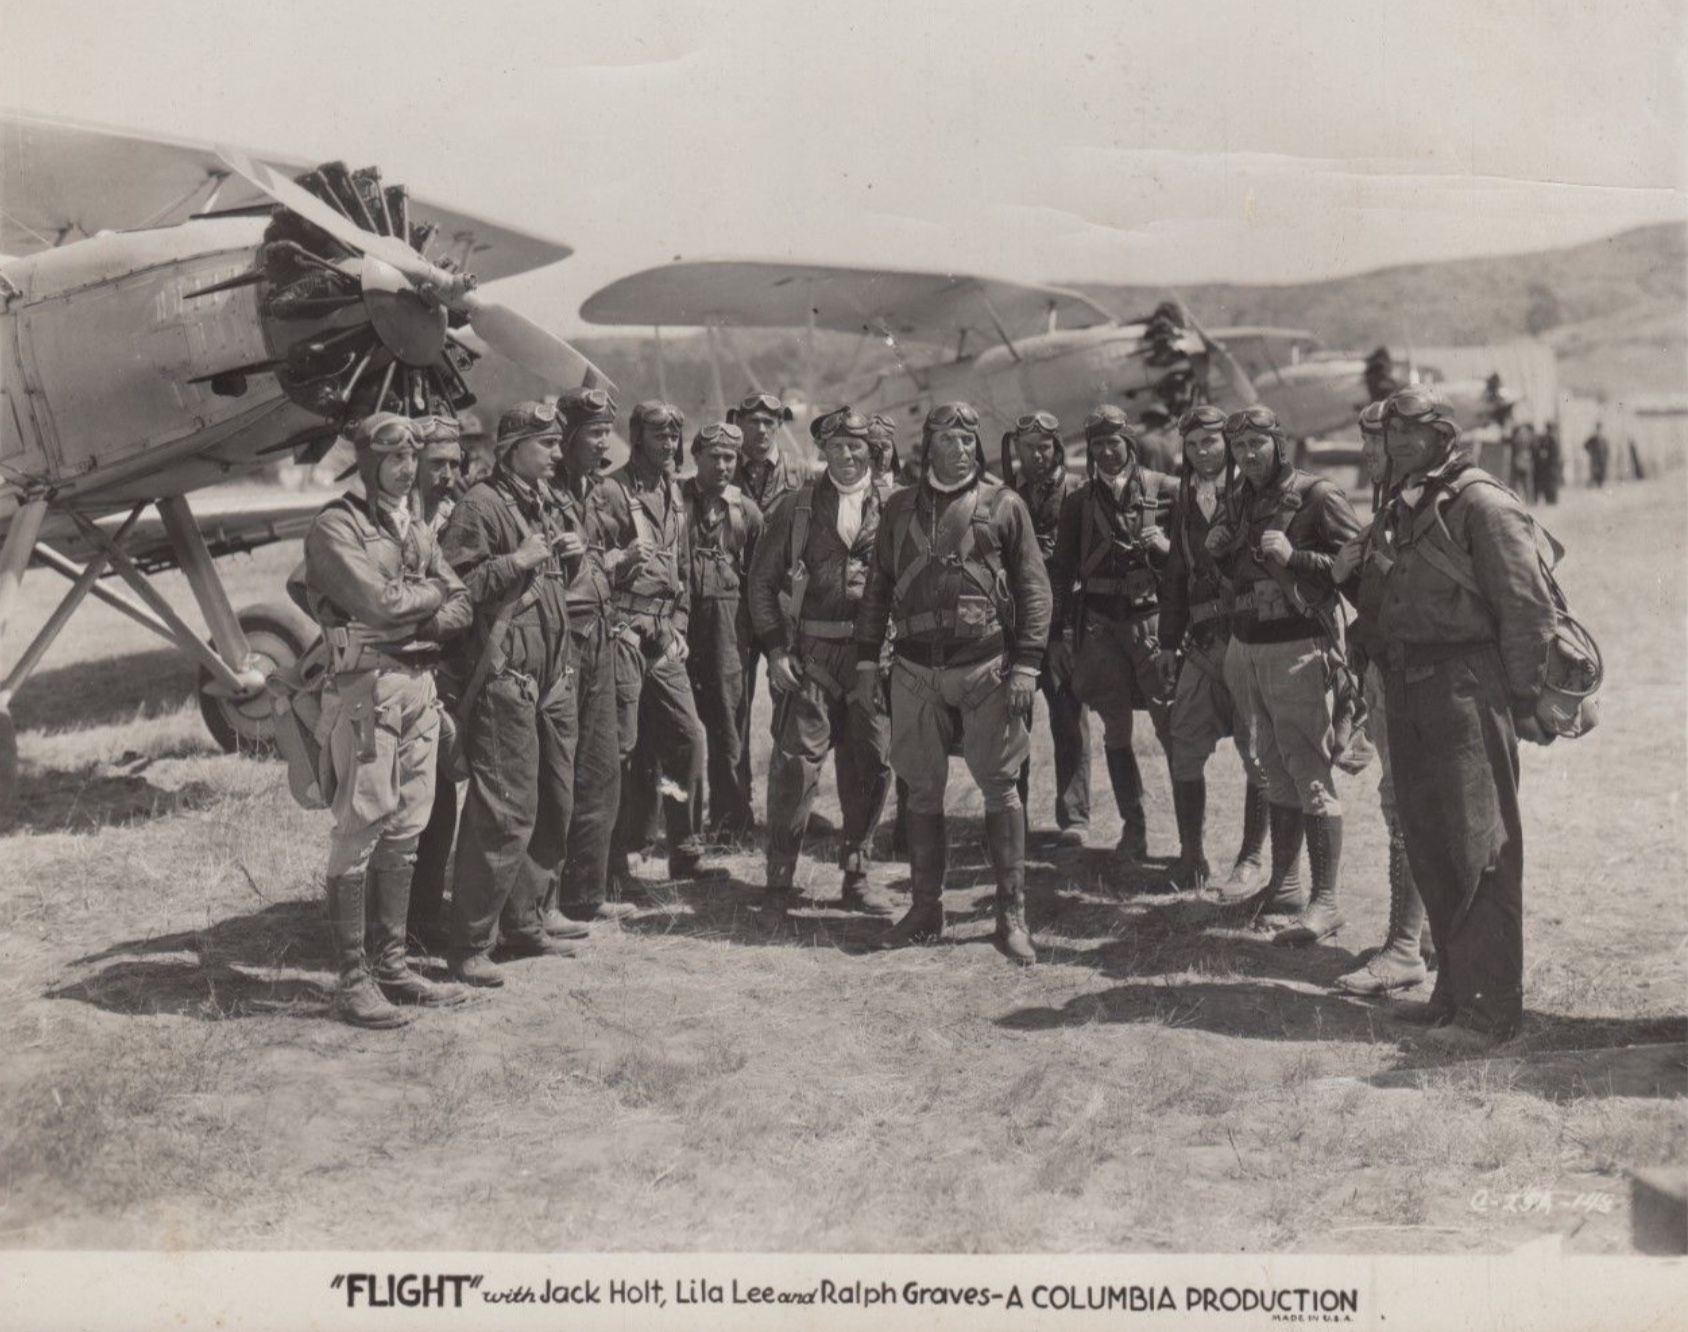 Walter Brennan, Joe Bordeaux, Eddy Chandler, Harold Goodwin, Ralph Graves, Jack Holt, George Irving, and Alan Roscoe in Flight (1929)